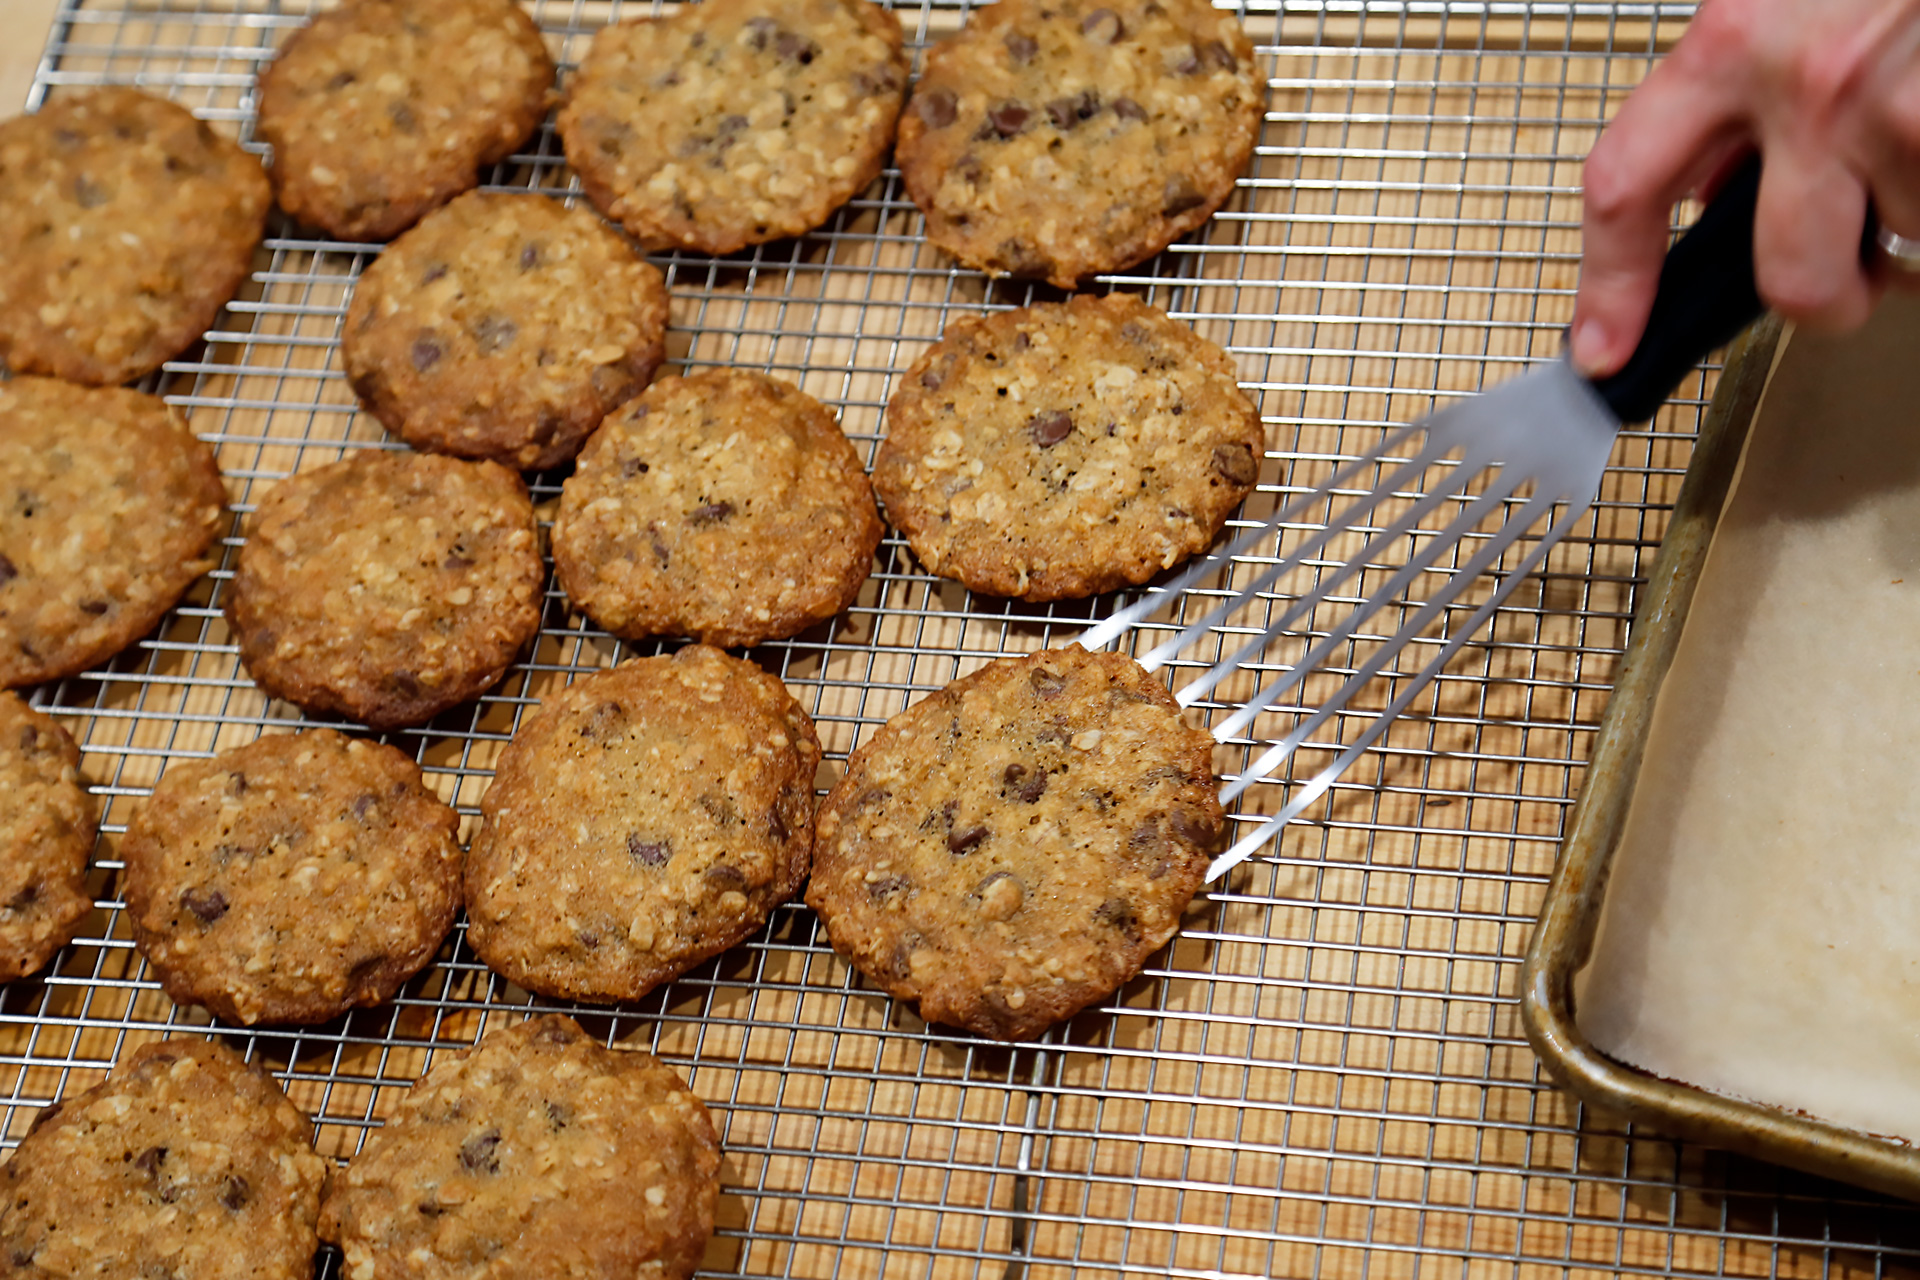 Bake until golden brown, about 10 to 12 minutes. Let cool in the pan on a wire rack for 5 minutes, then use a metal spatula to transfer the cookies directly to wire racks to cool.